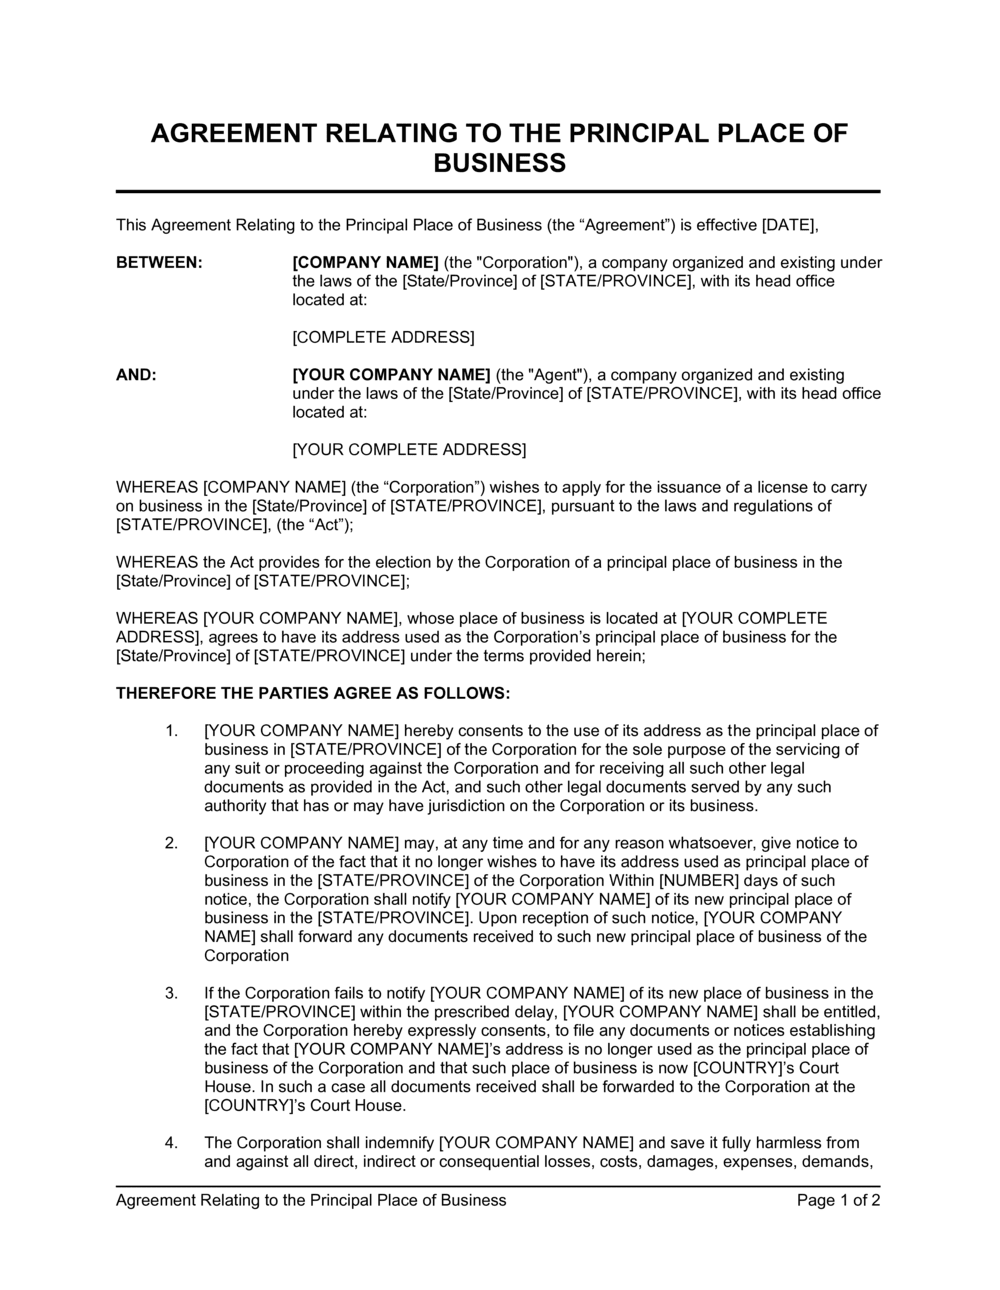 Business-in-a-Box's Agreement Relating to the Principal Place of Business Template